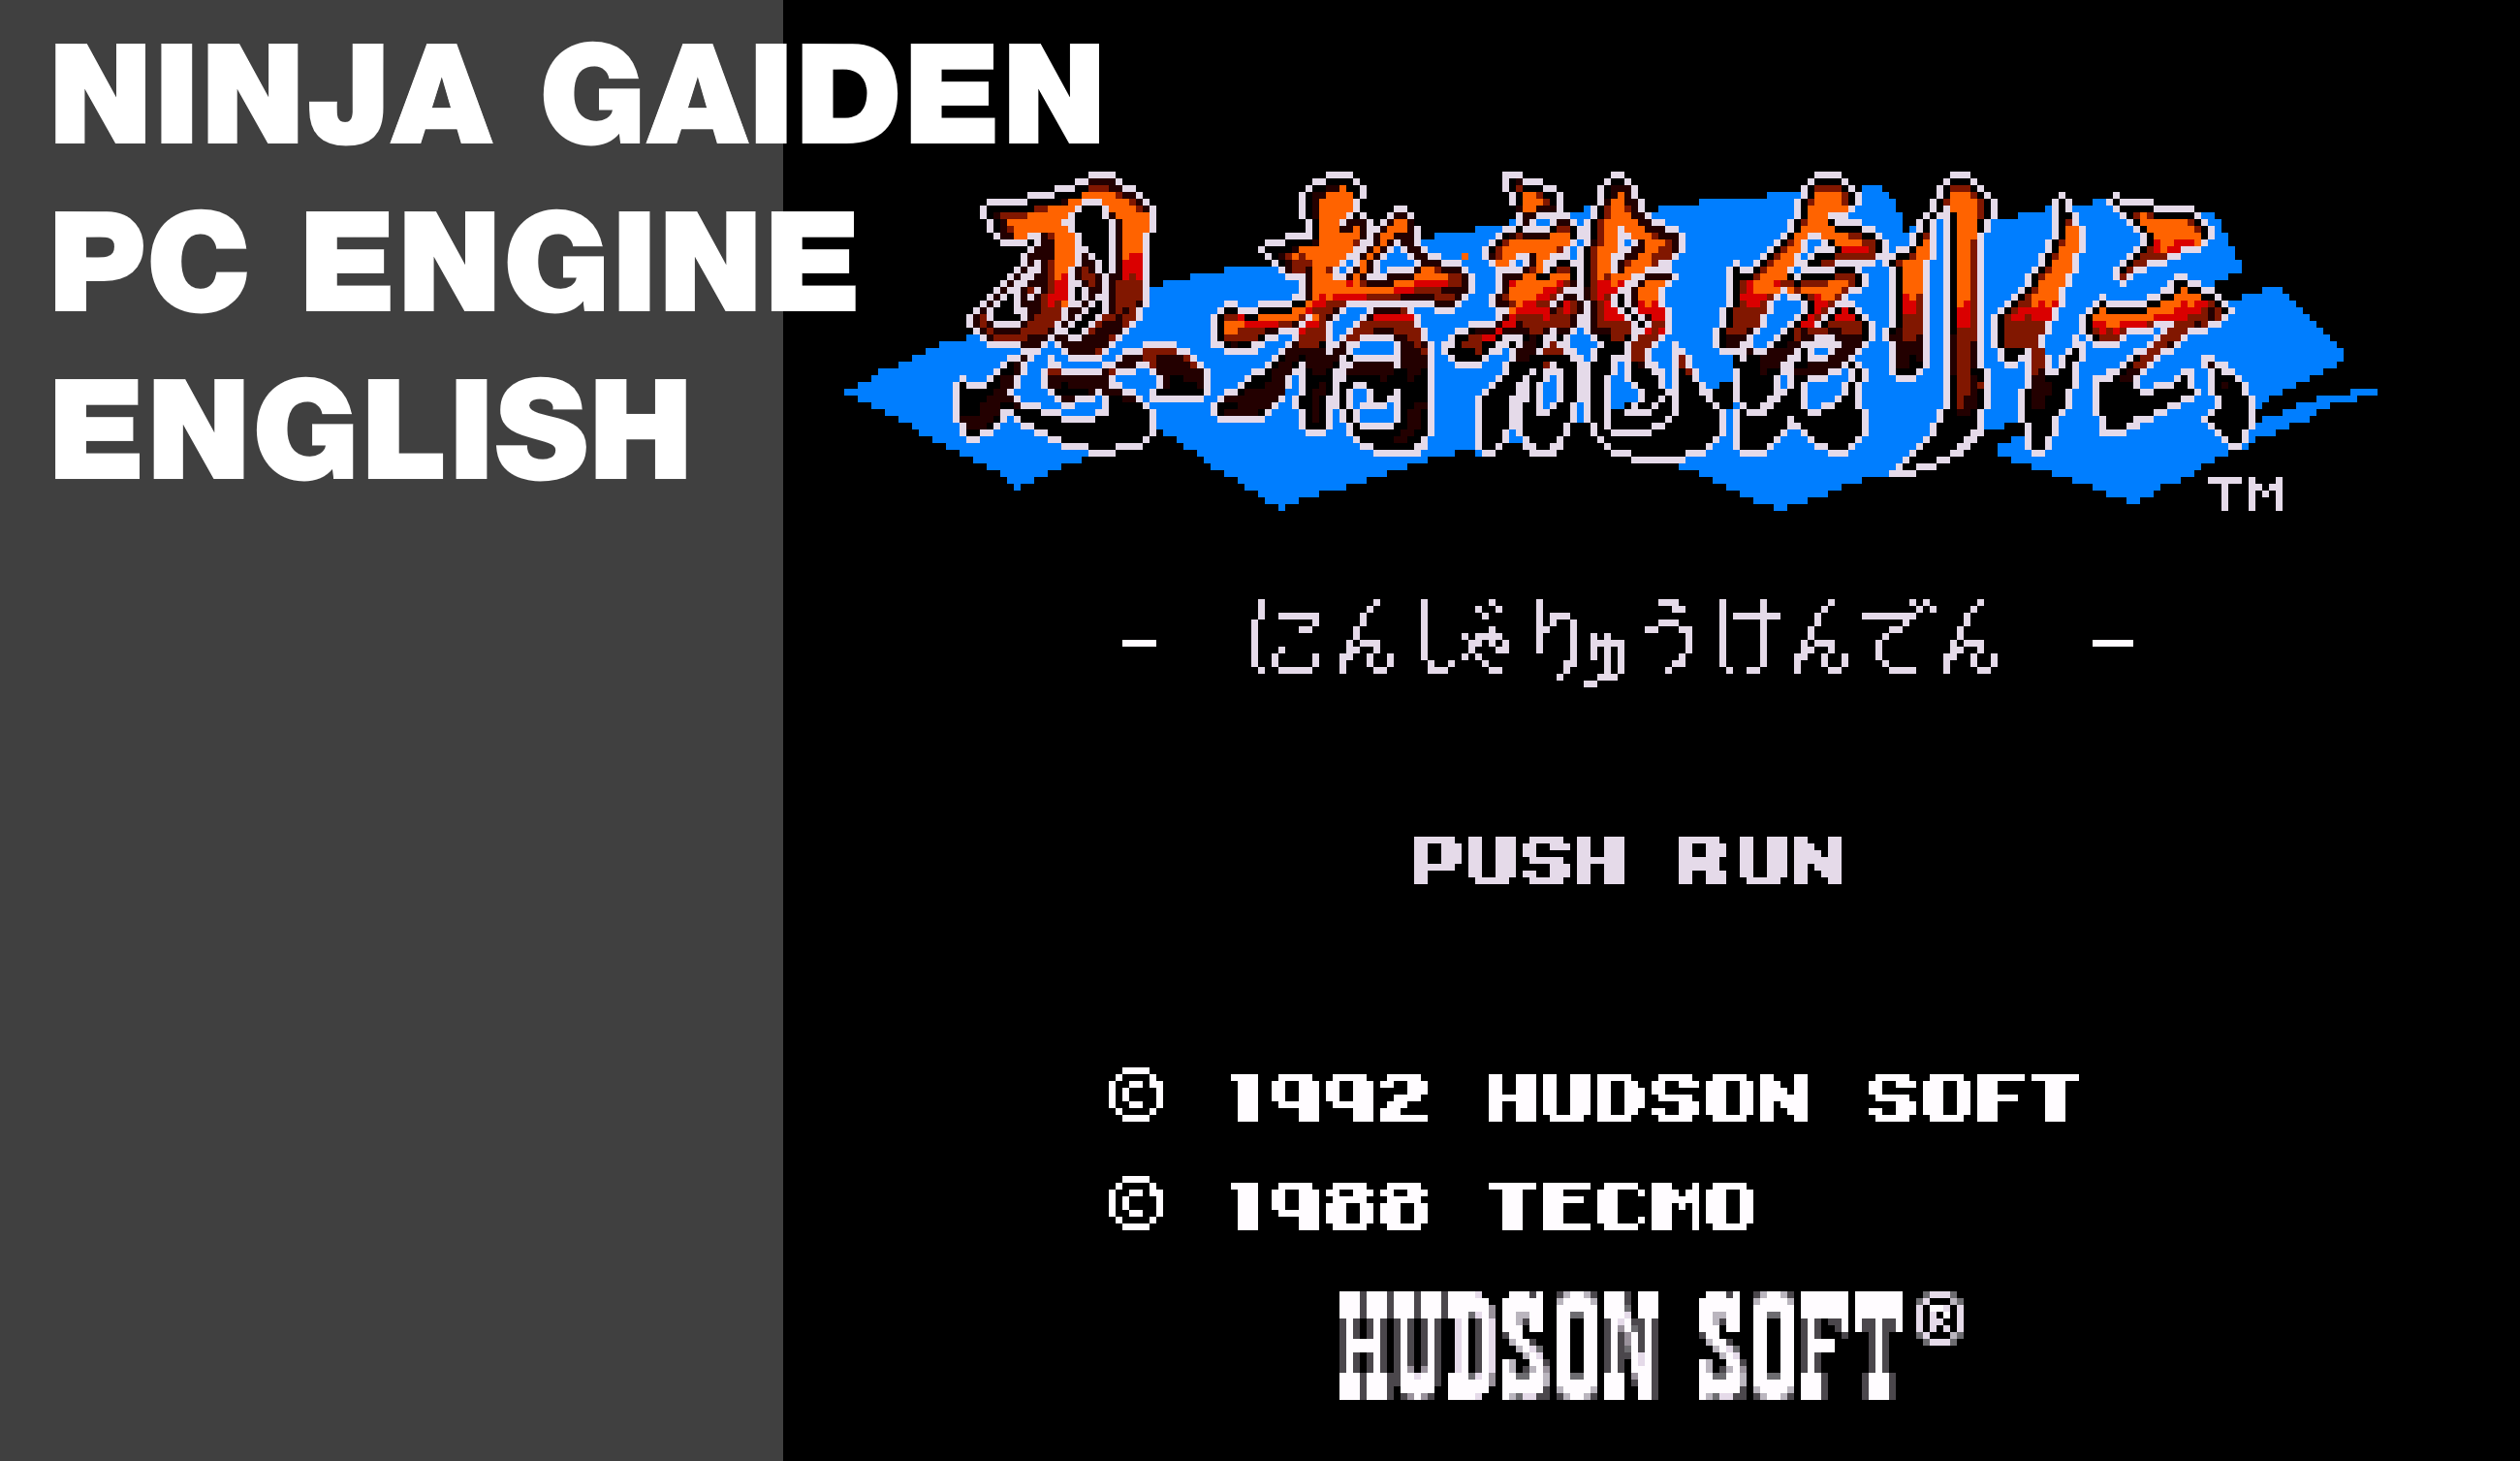 Ninja Gaiden PC Engine English Patch by David Shadoff